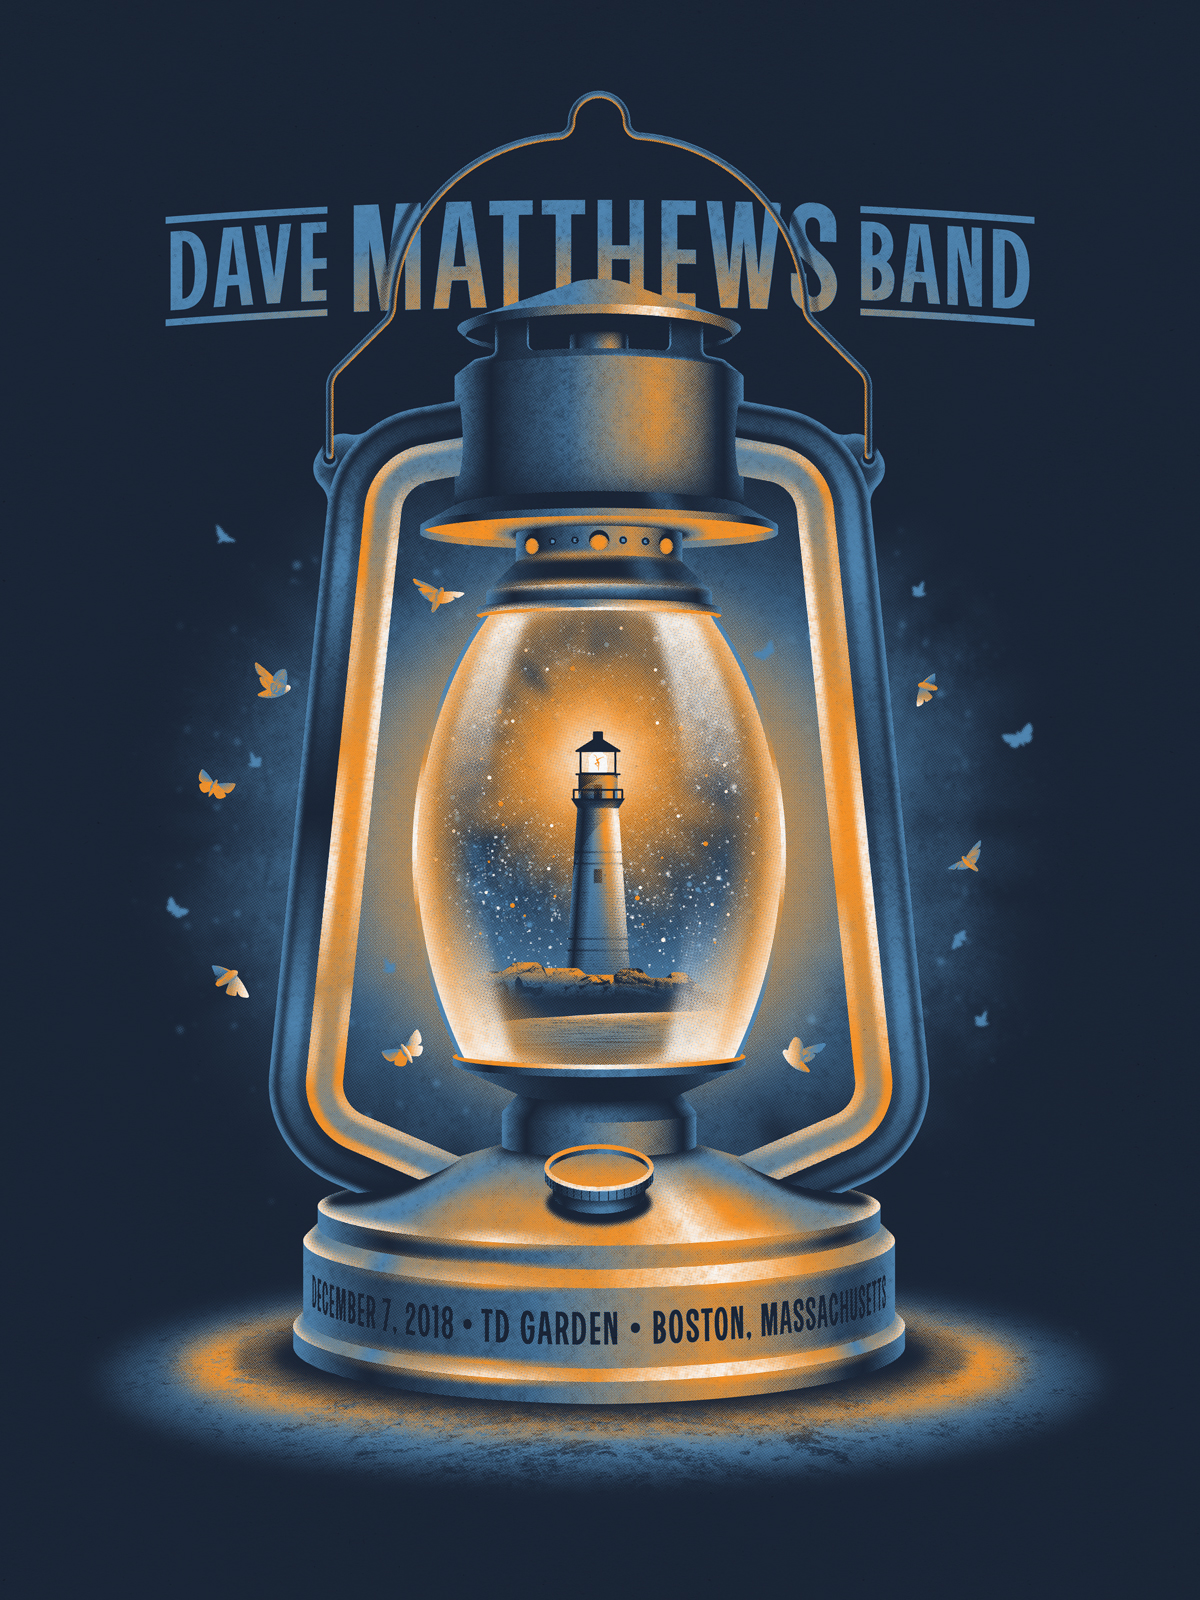 Dave+Matthews+Band+poster+by+DKNG.jpg